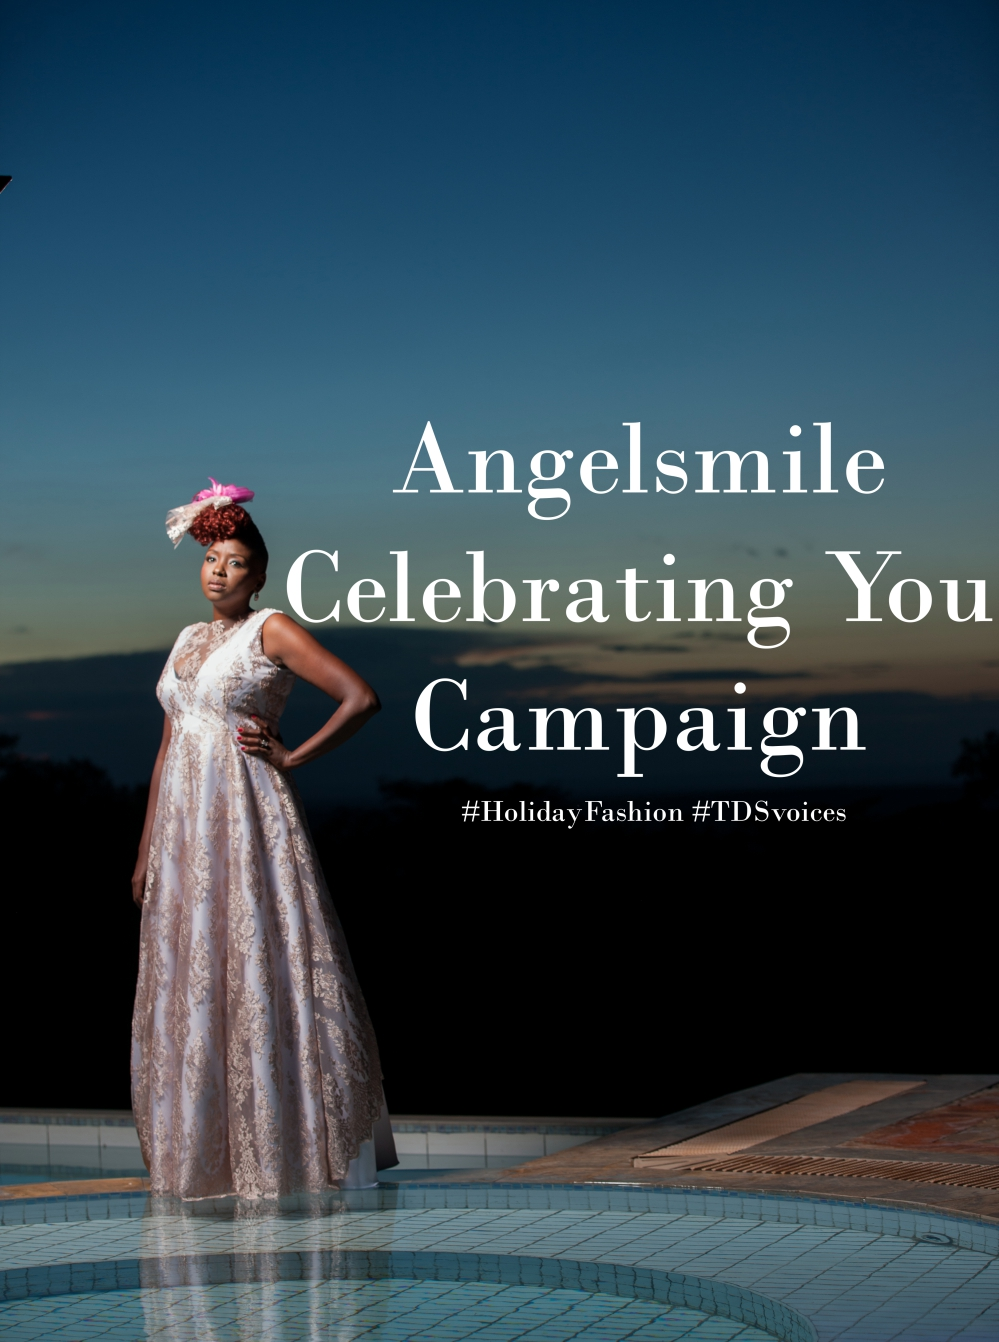 Angelsmile launches Celebrating You campaign to showcase individuality #HolidayFashion #TDSvoices